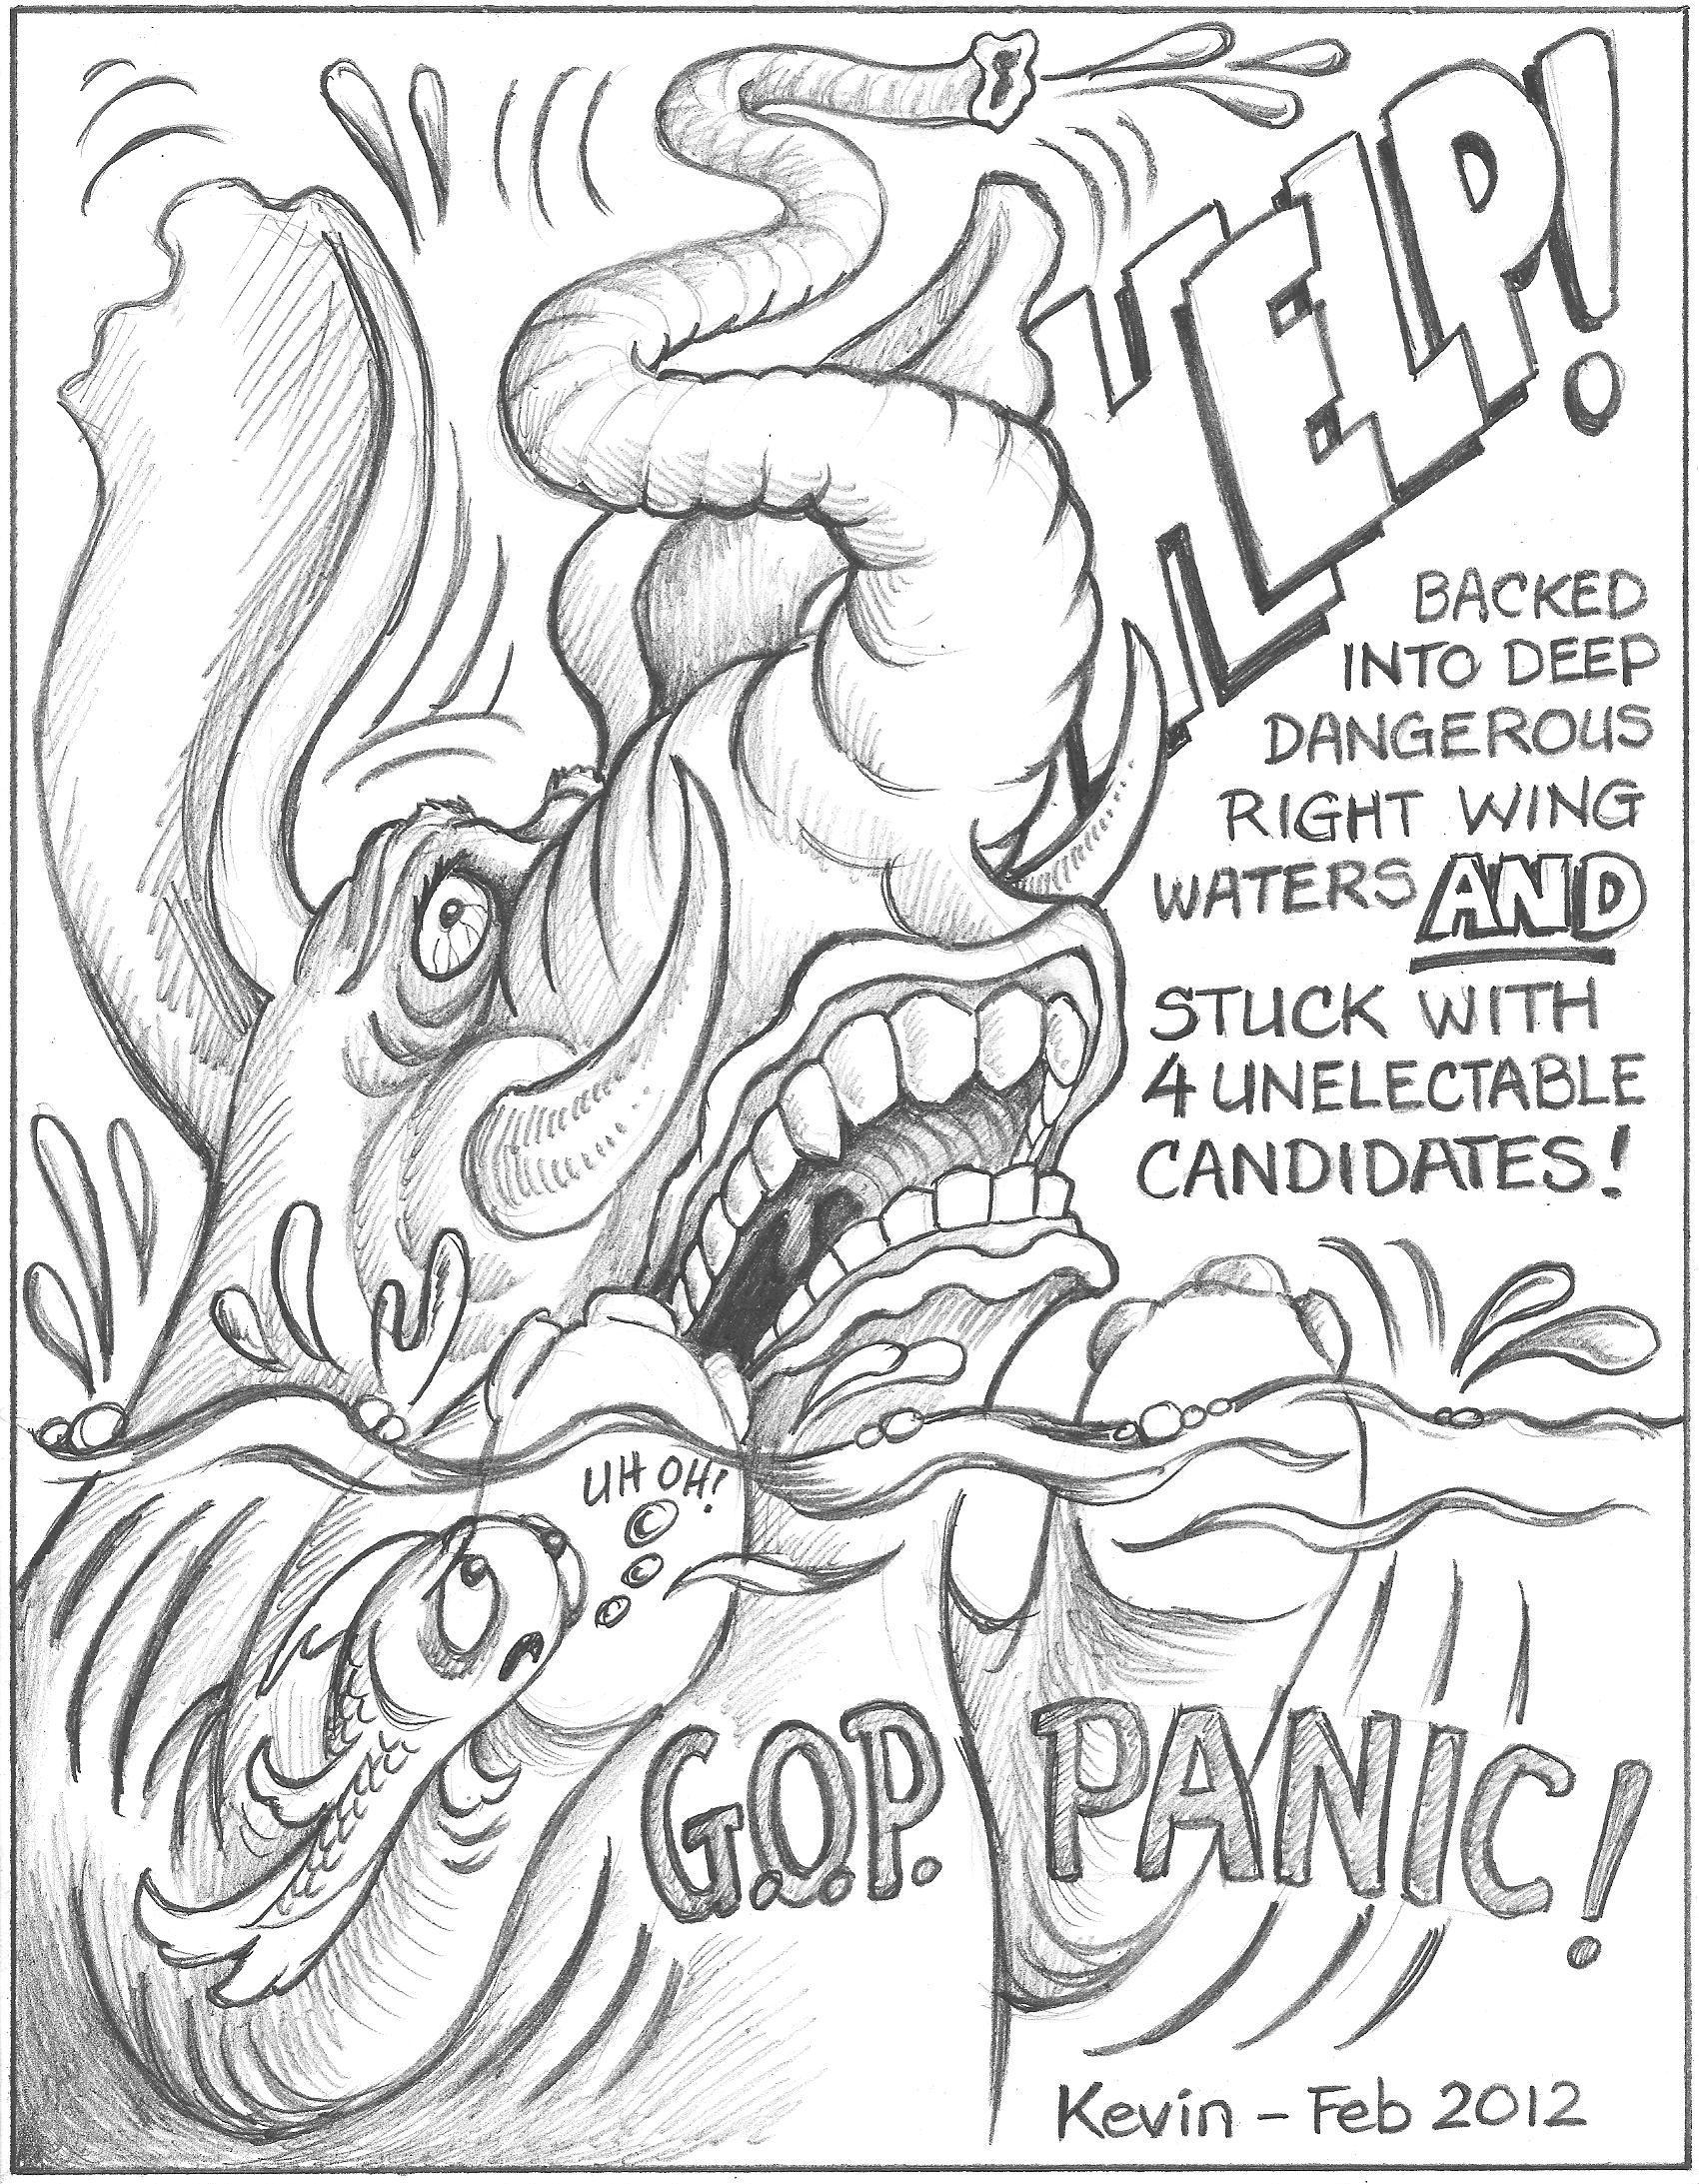 ol gop panic cartoon feb jpg cb globalisation in essay